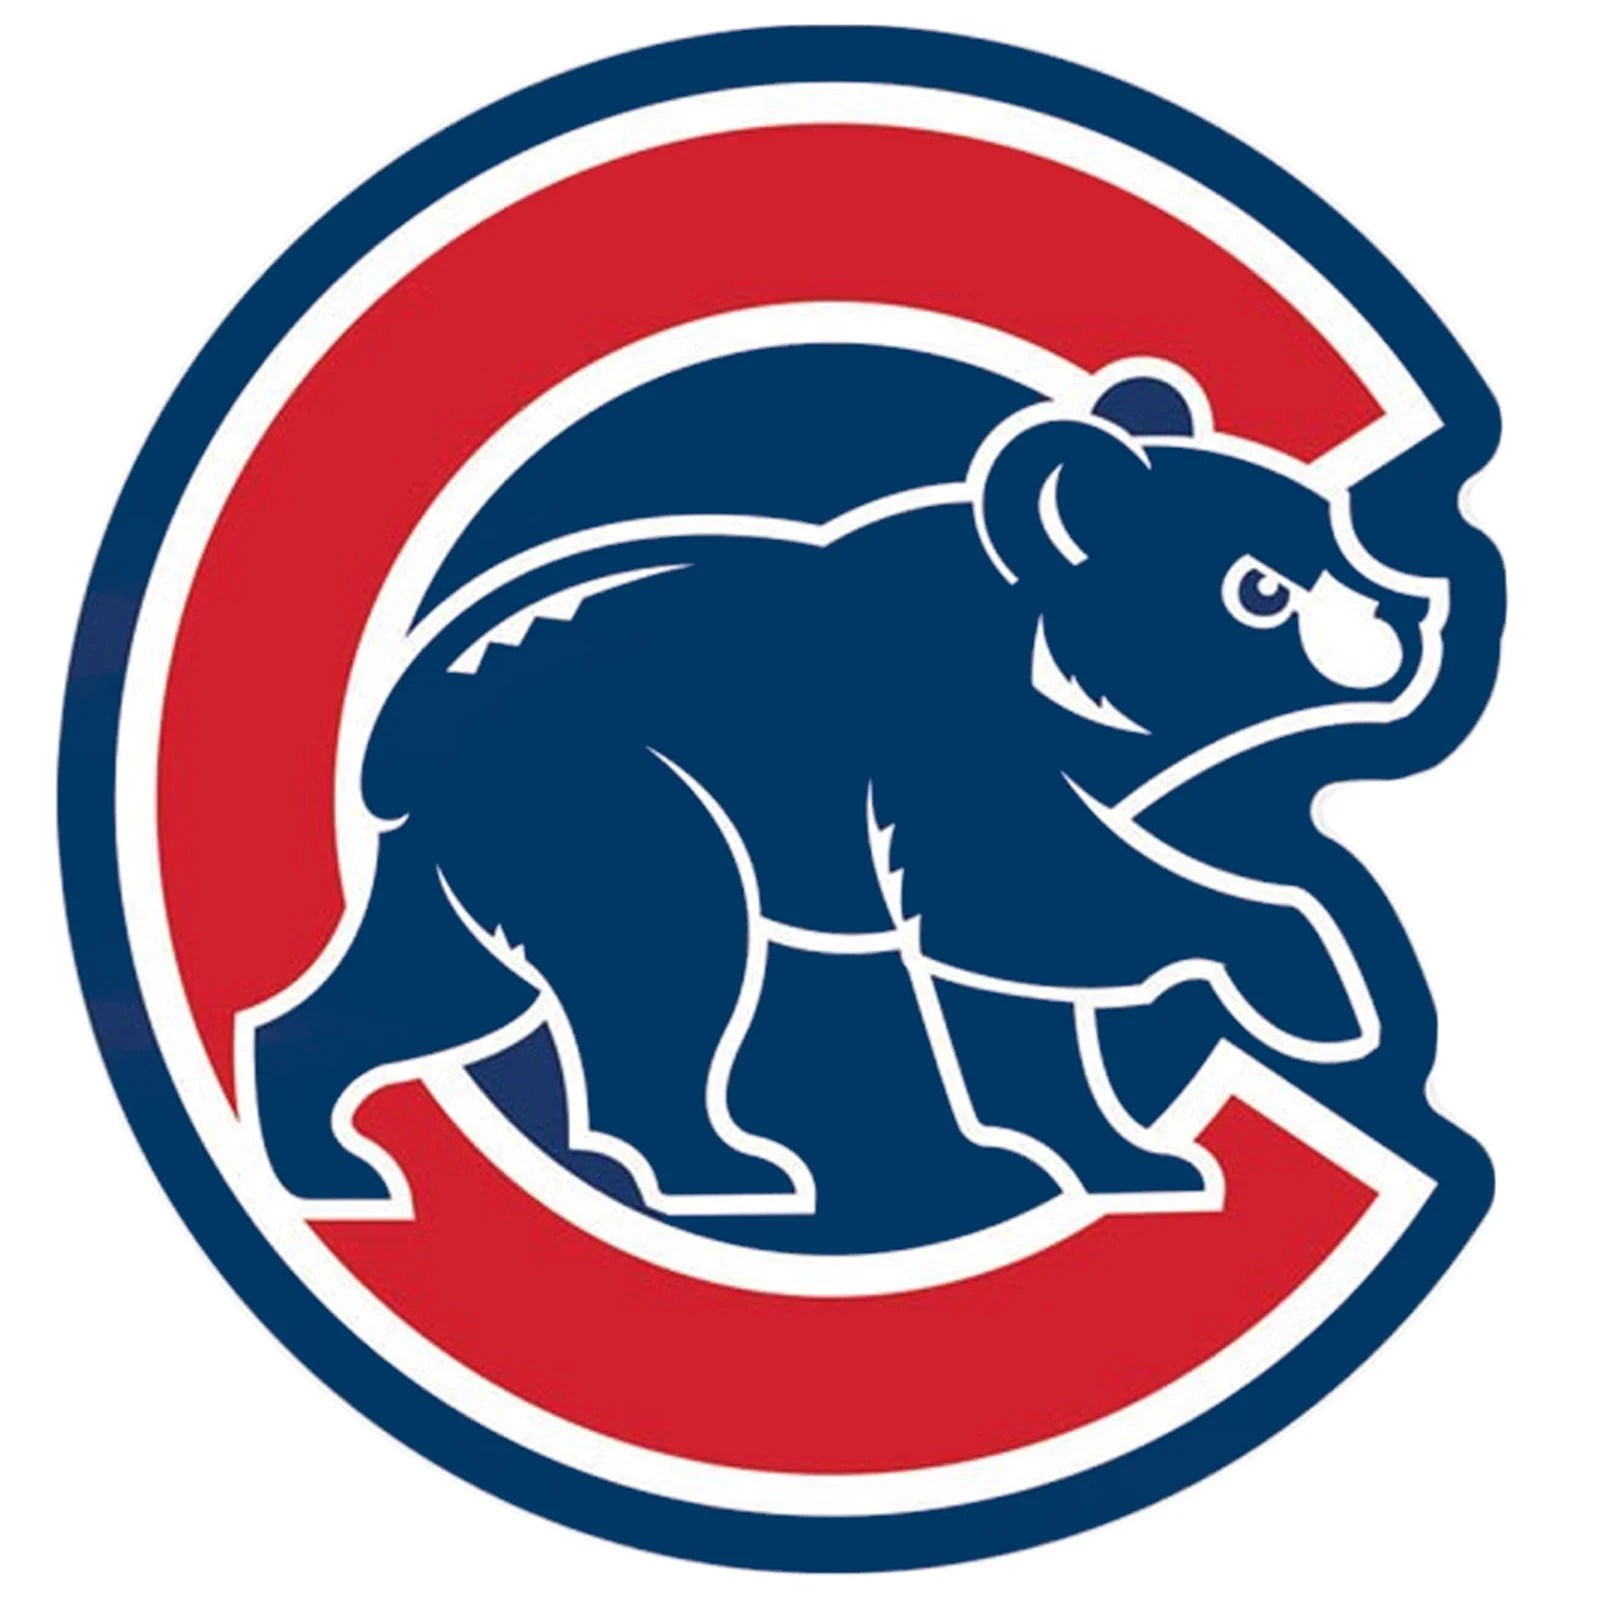 Chicago Cubs Chicago Cubs Printable Images Baseball Logos